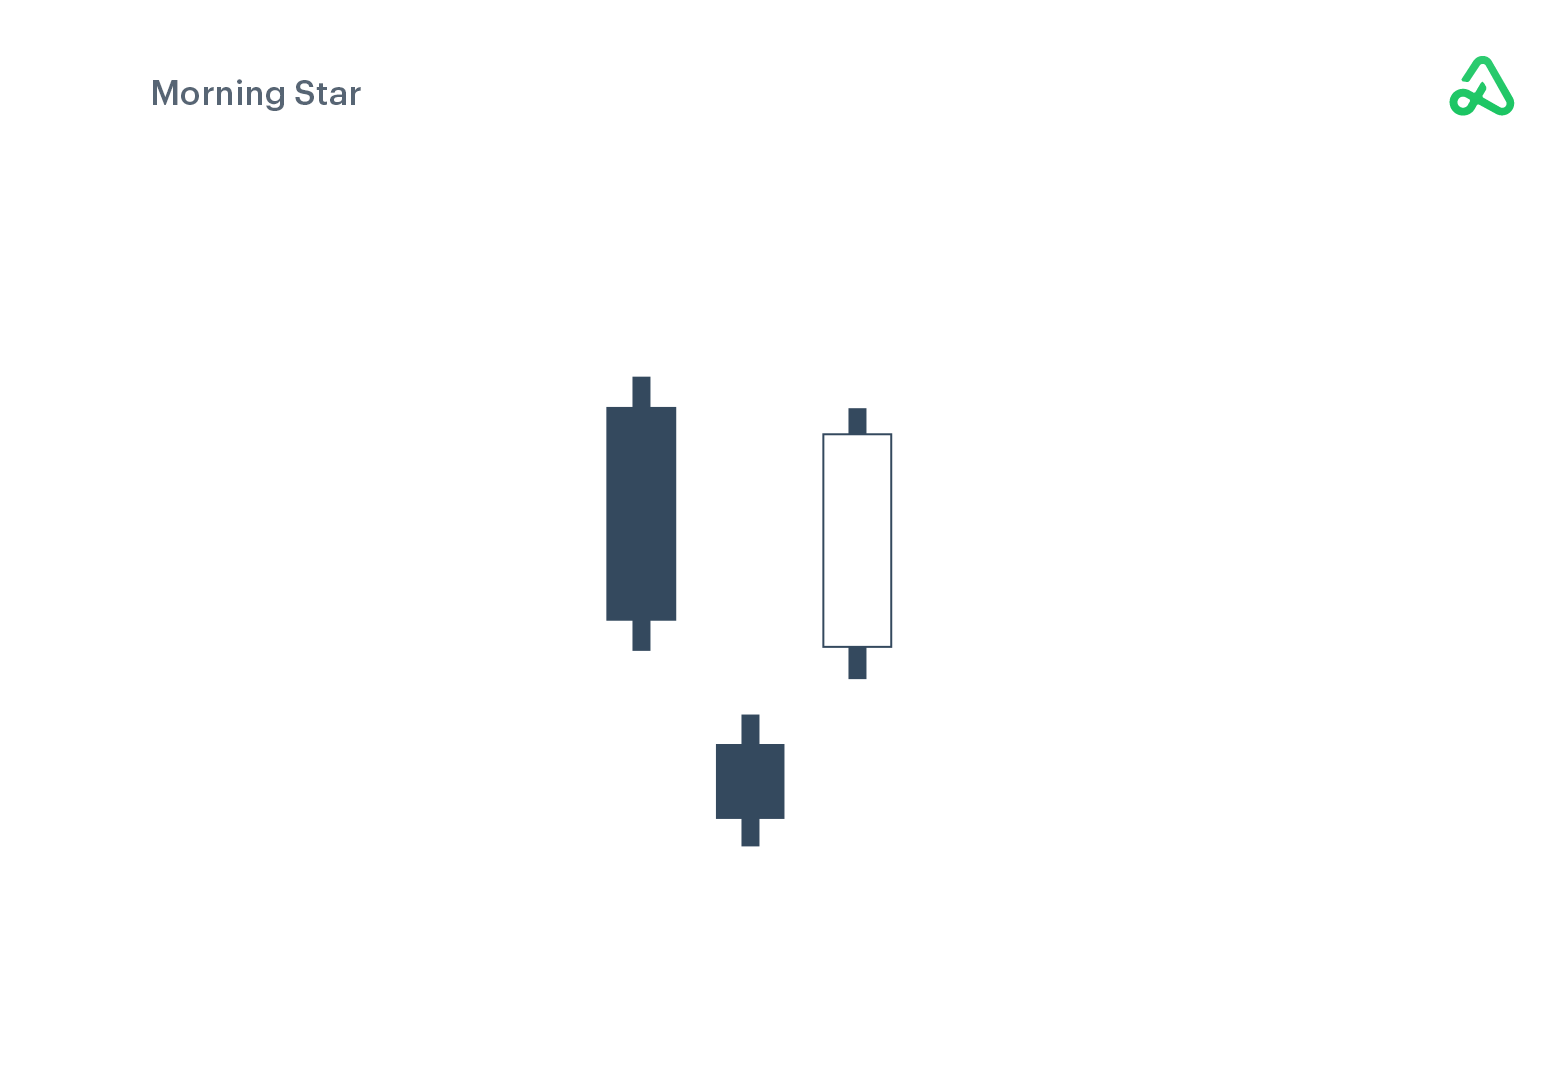 Morning Star example image